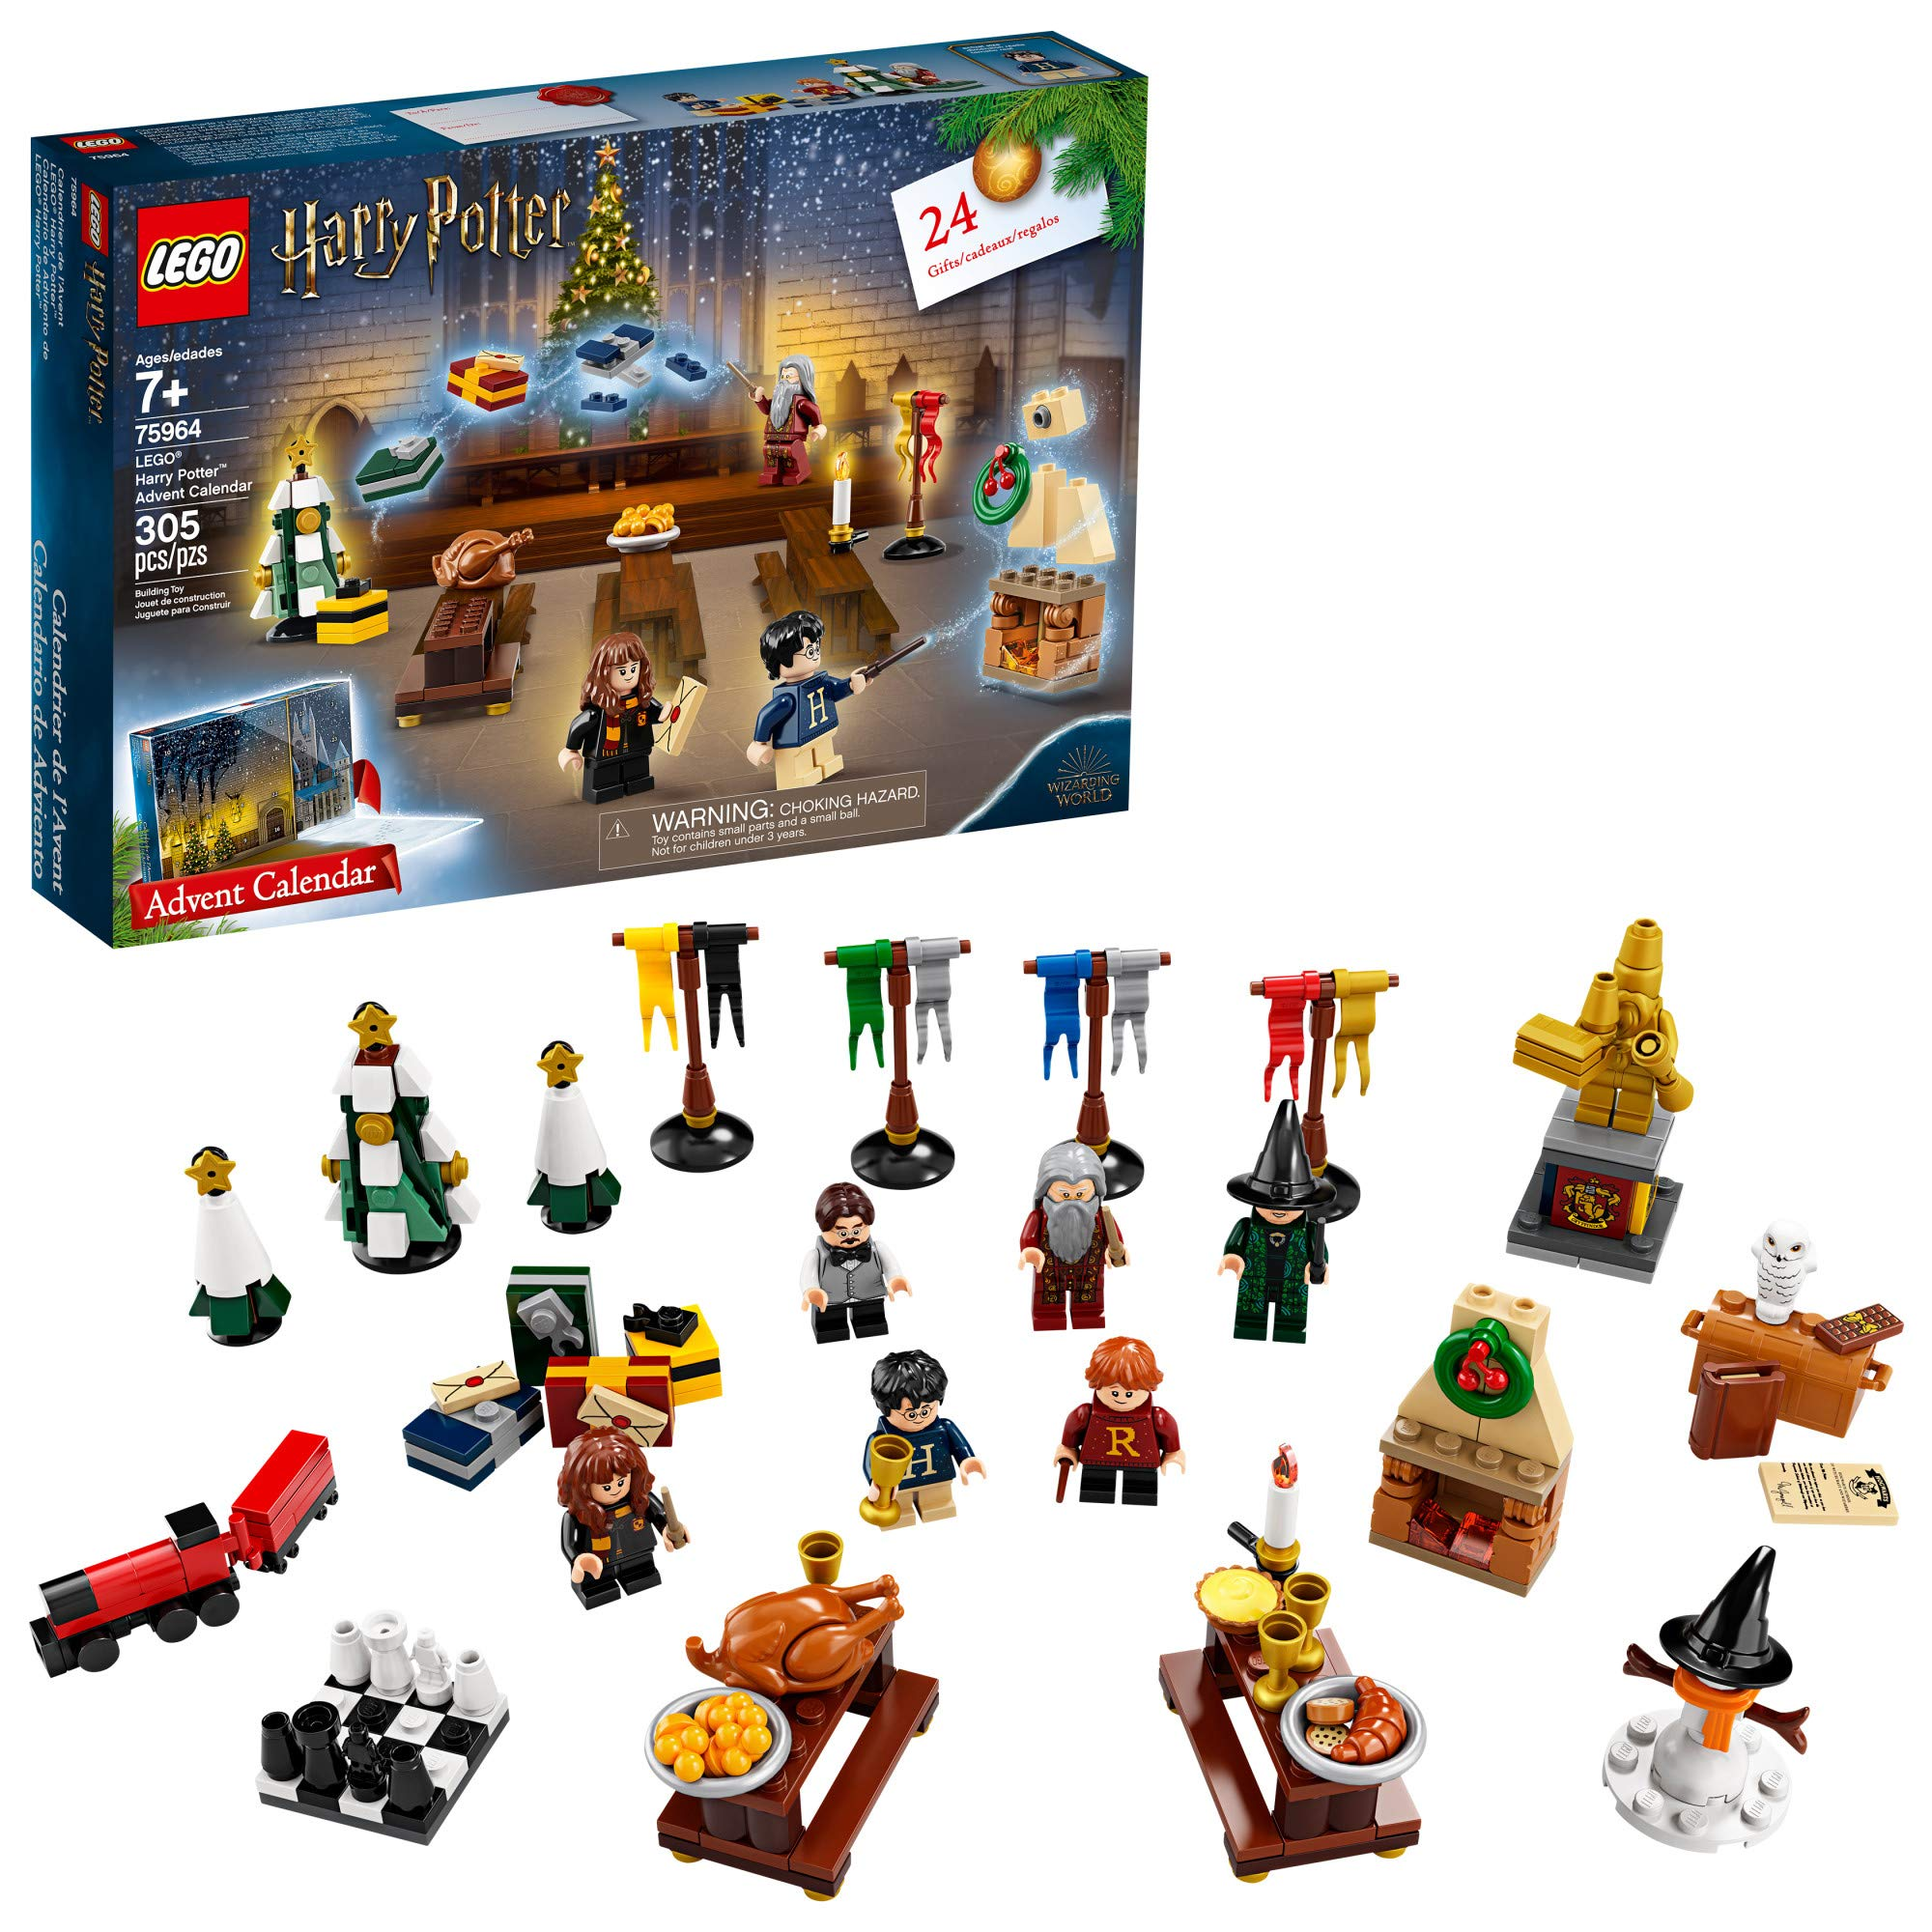 LEGO Harry Potter Advent Calendar 75964 Building Kit, New 2019 (305 Pieces) by LEGO